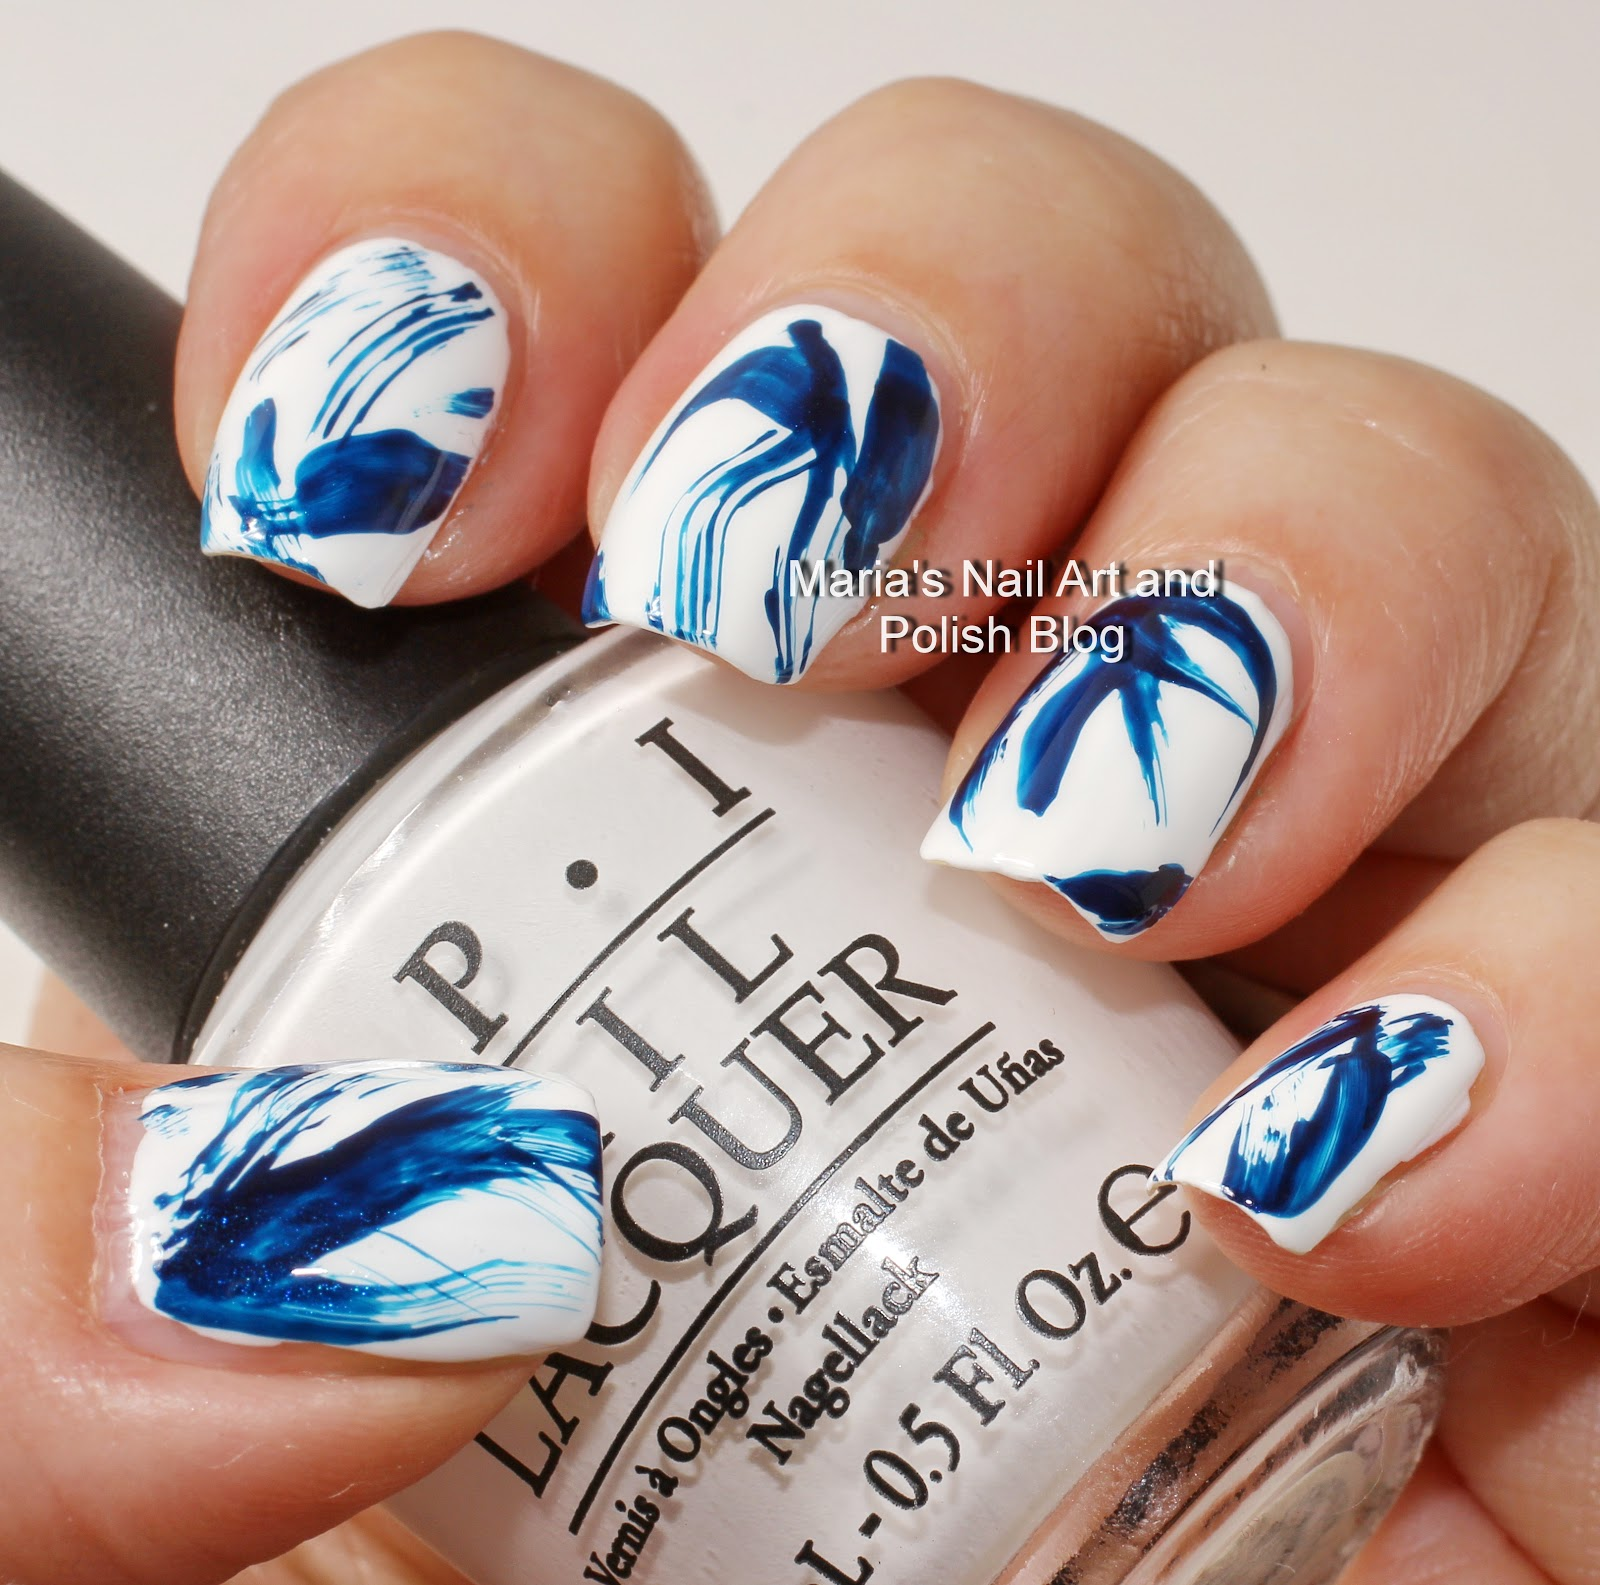 Marias nail art and polish blog blue and white brush stroke nail art stroke nail art the base color is opi alpine snow and i created the blue pattern to match a blouse of mine with the bottle brush of essie midnight prinsesfo Images